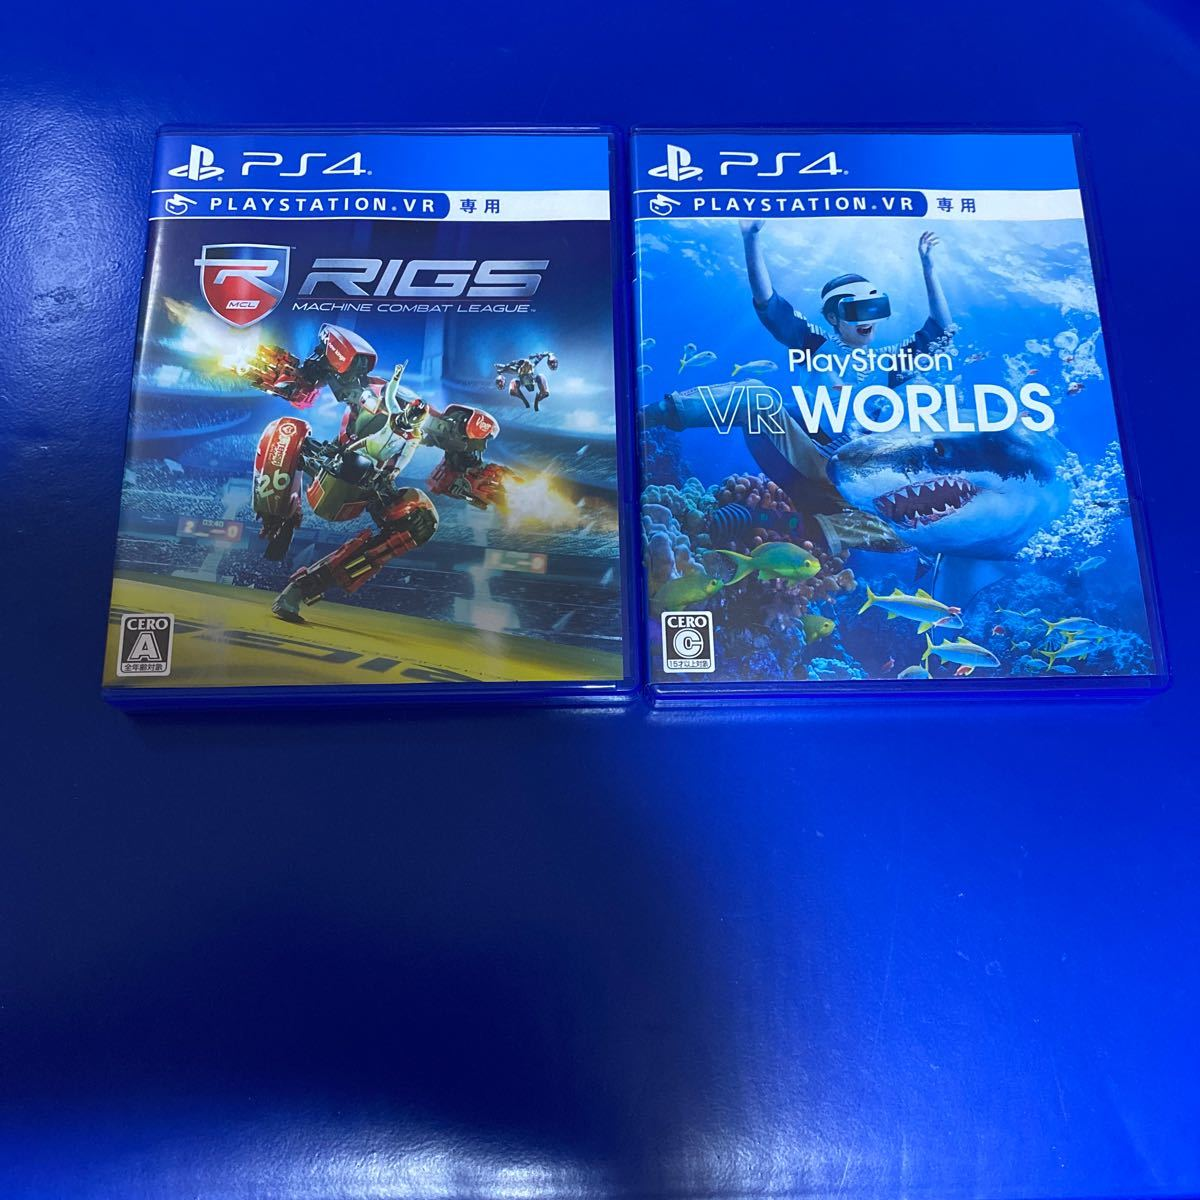 【PS4】 RIGS & PlayStation VR WORLDS